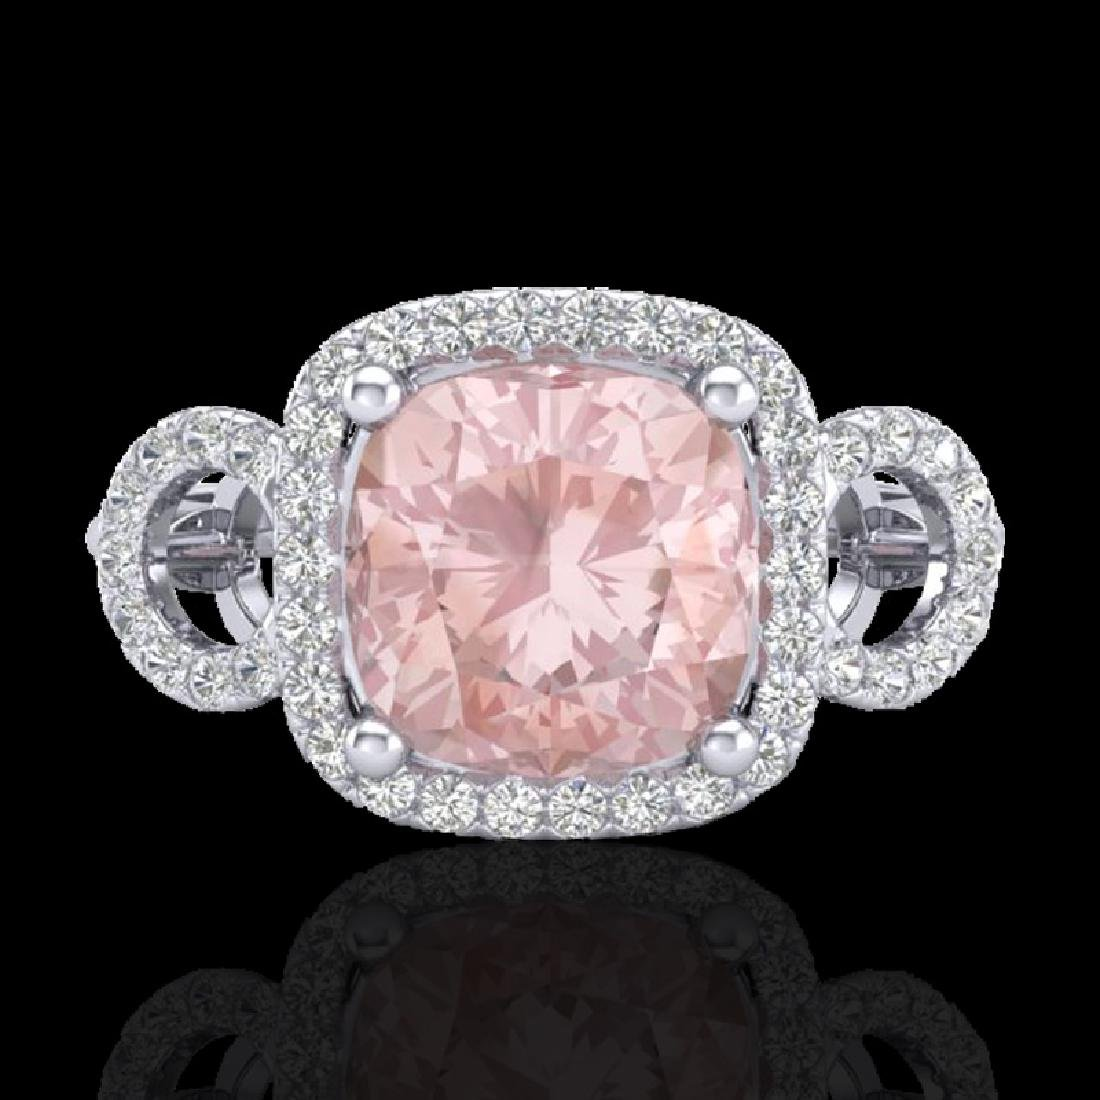 2.75 CTW Morganite & Micro VS/SI Diamond Ring 18K White